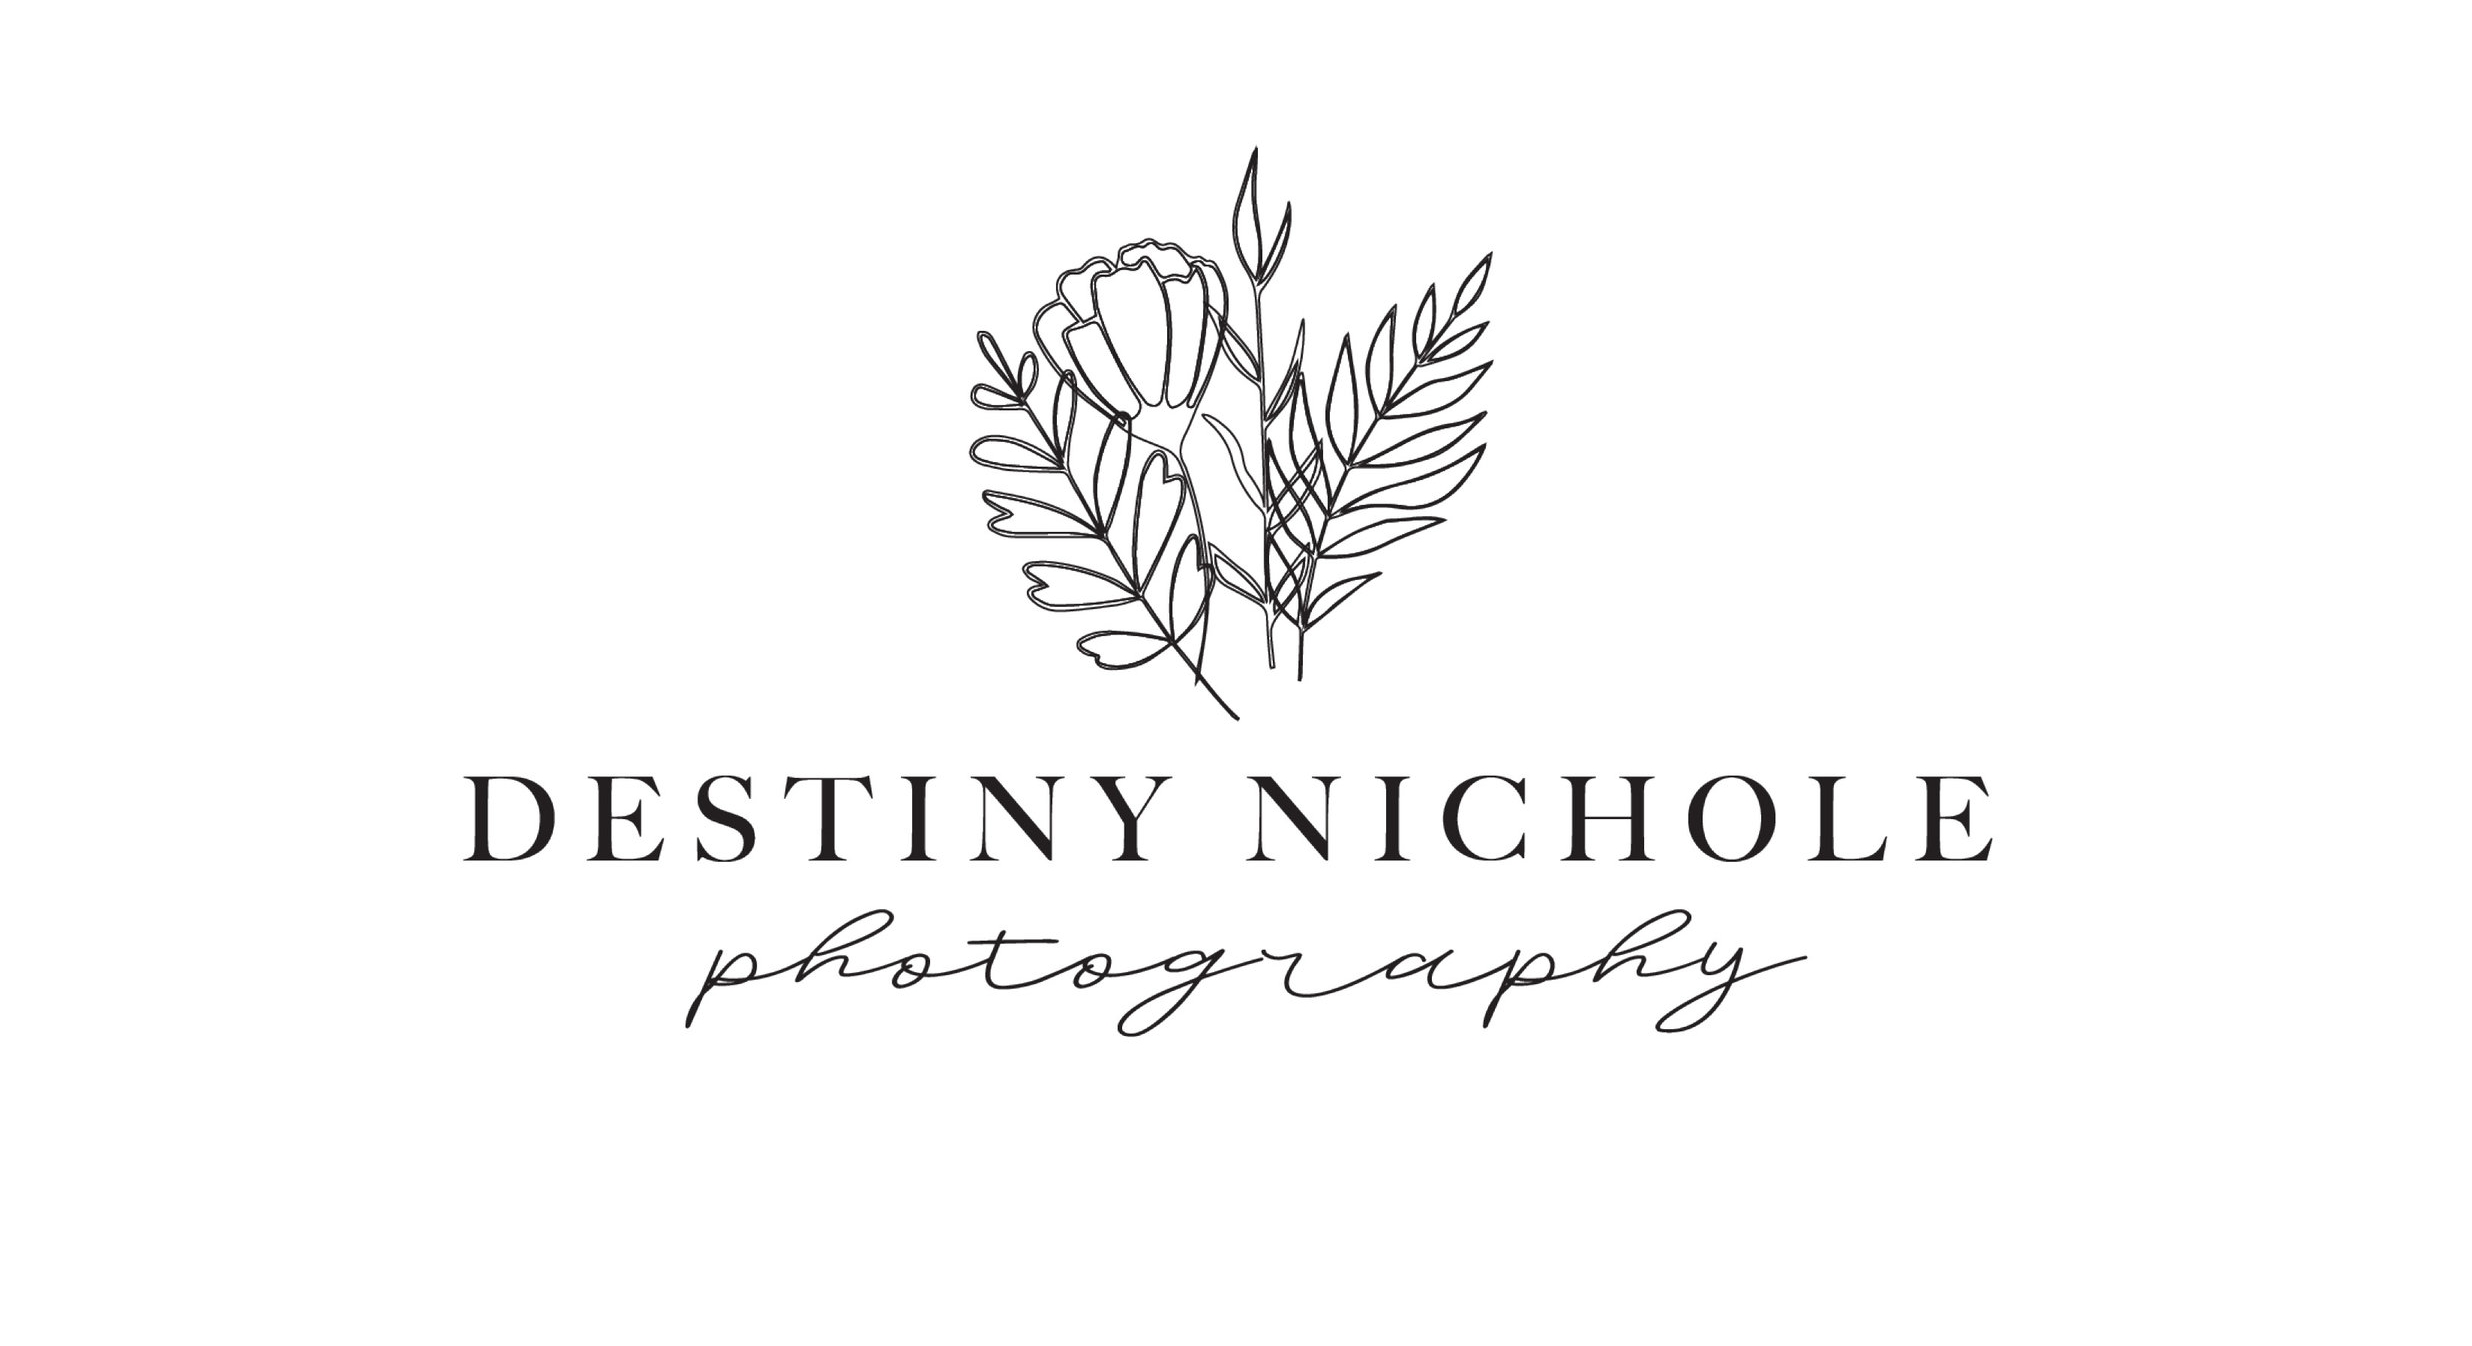 DestinyNicholePhotography-Brand3.jpg